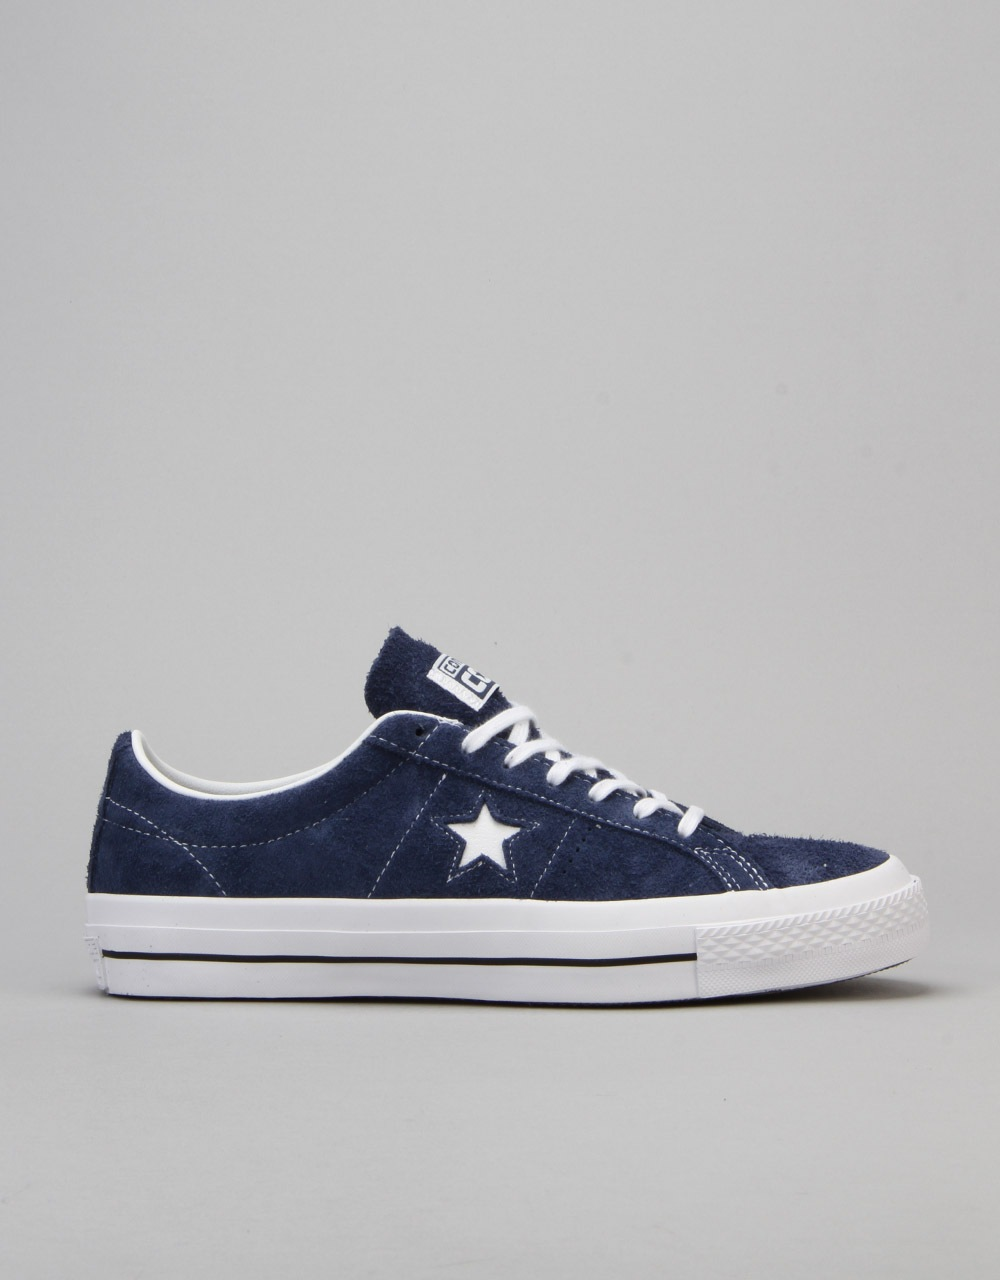 5be01523356 Converse One Star Skate Shoes - Navy White Gum